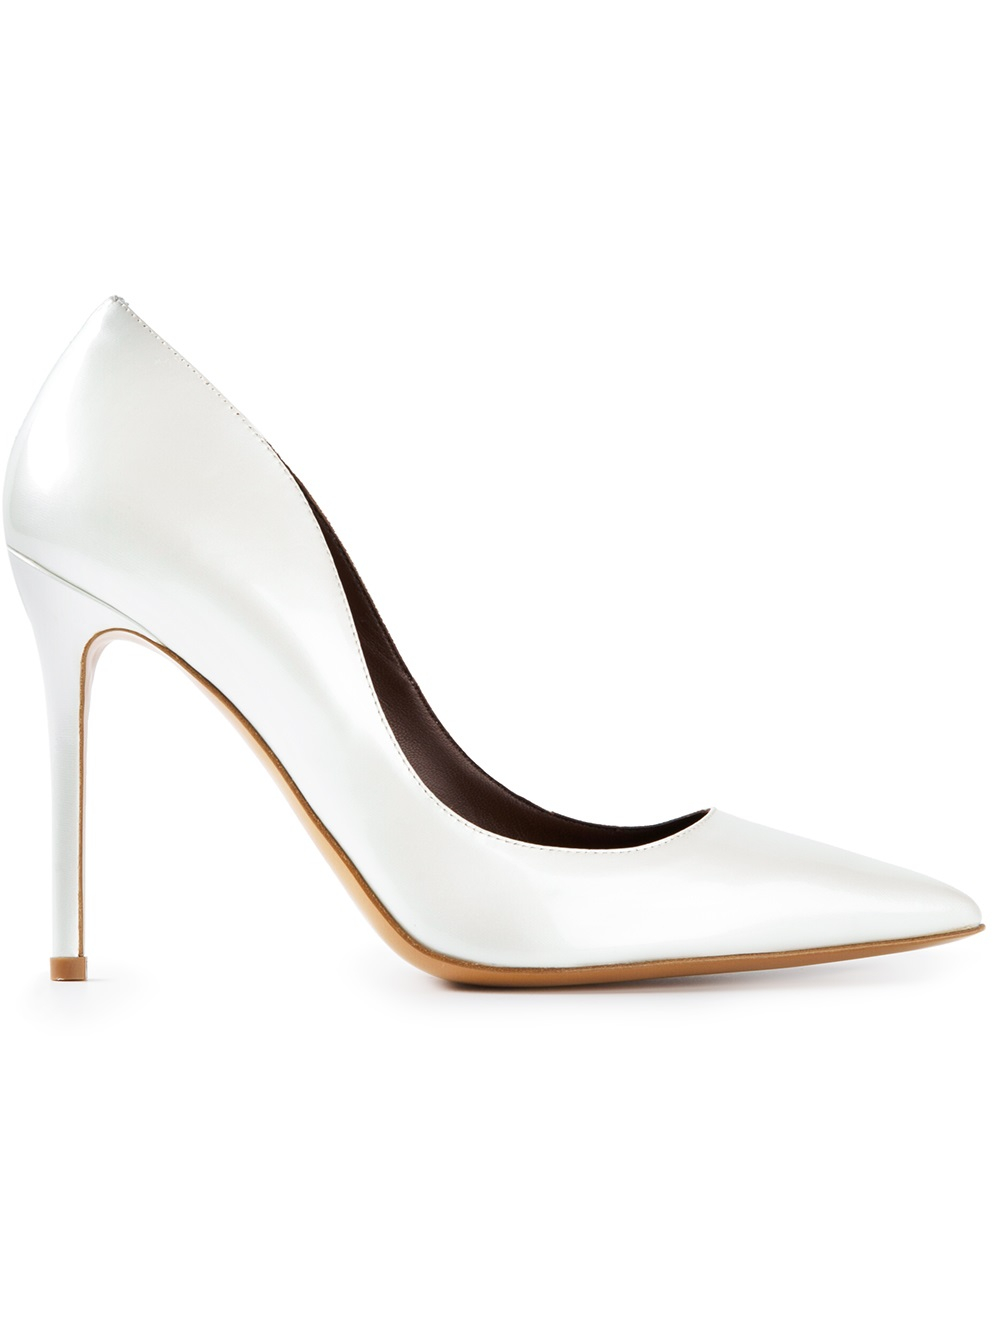 cheap sale from china free shipping wholesale price Bruno Magli Pointed-Toe Leather Pumps cheap sale new 0kksPpBf